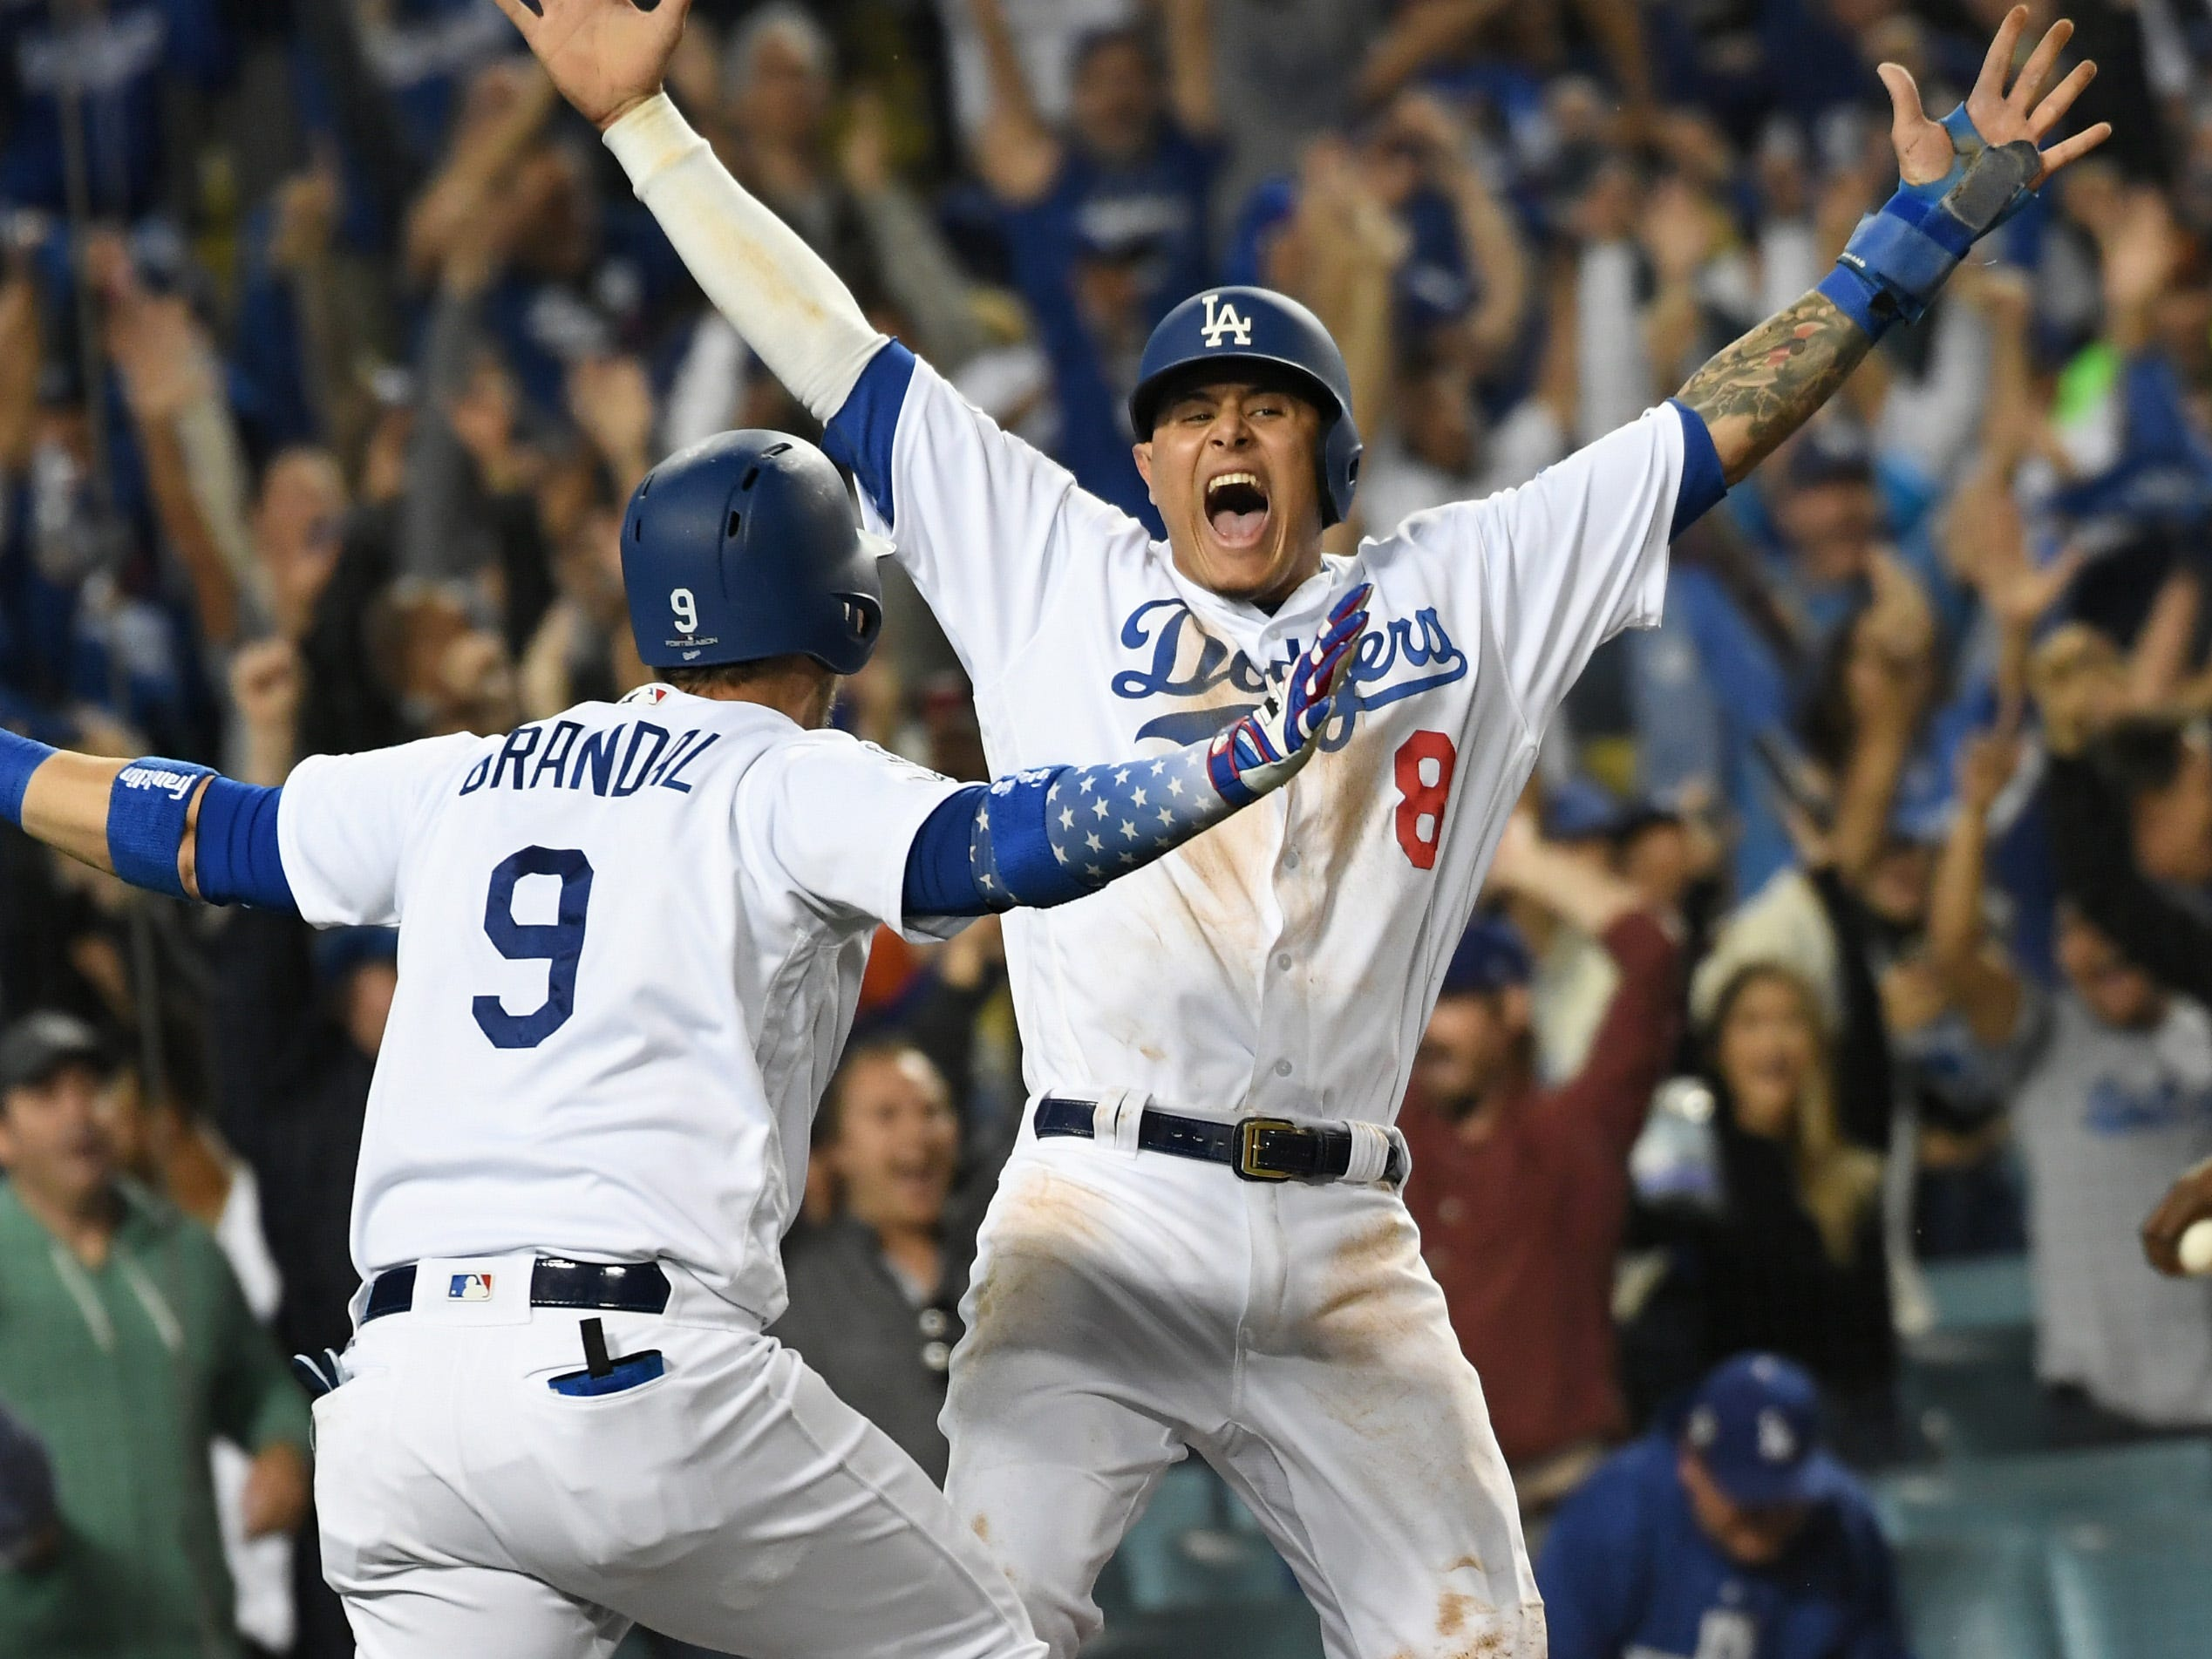 NLCS Game 4: Dodgers shortstop Manny Machado scores the winning run and is met by catcher Yasmani Grandal in the 13th inning.